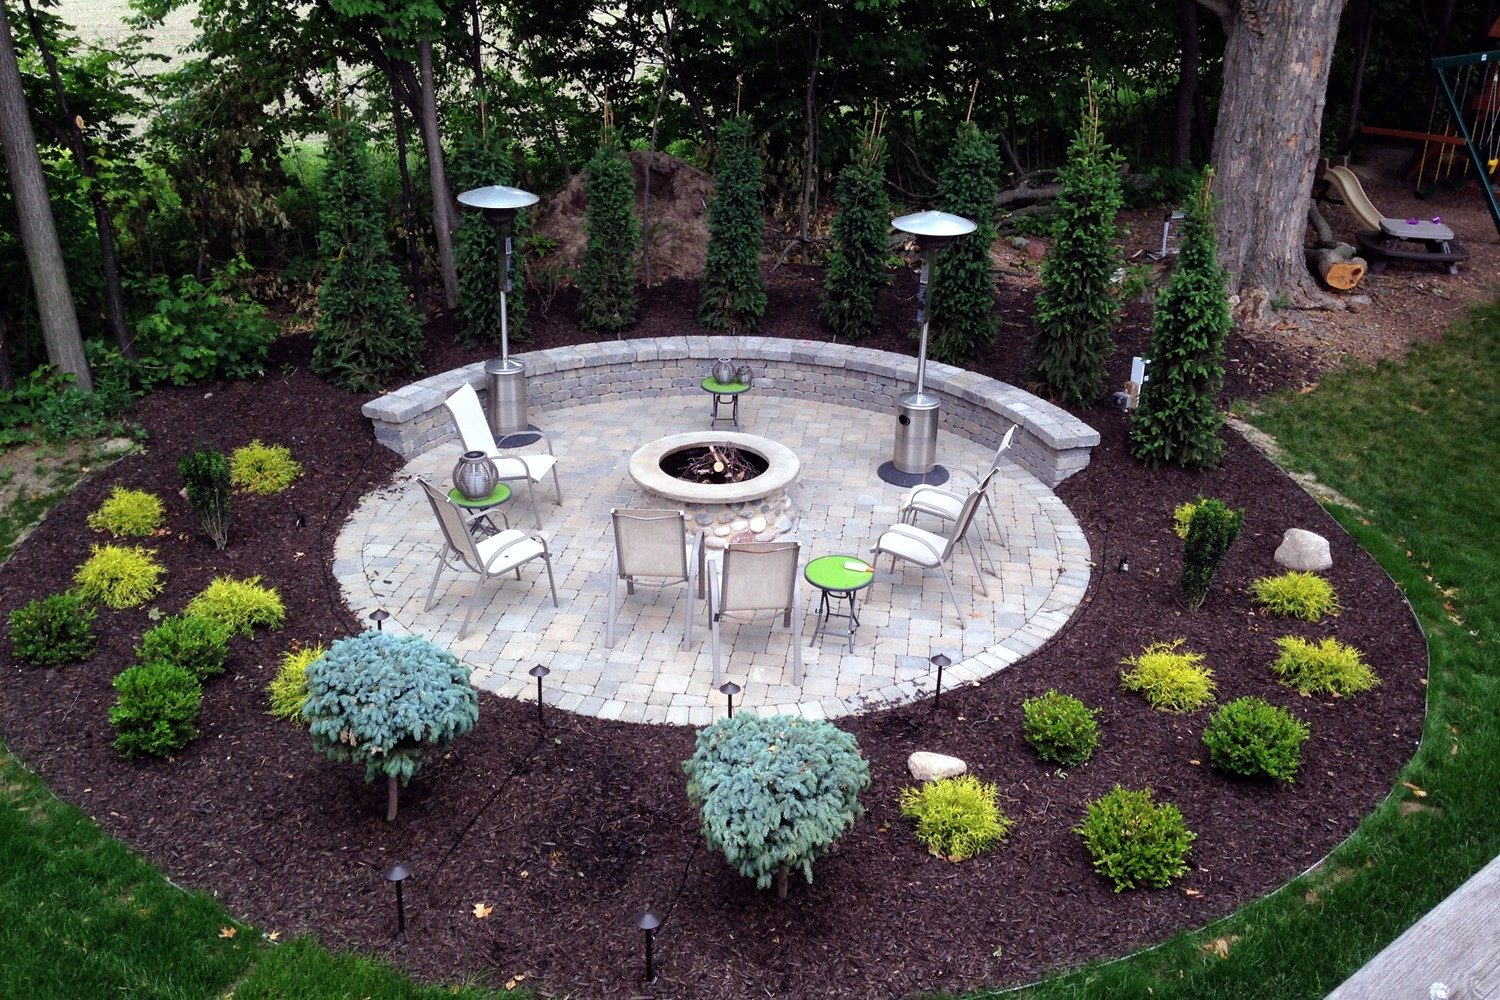 Backyard patio company in West Michigan - ProMowLandscape.com